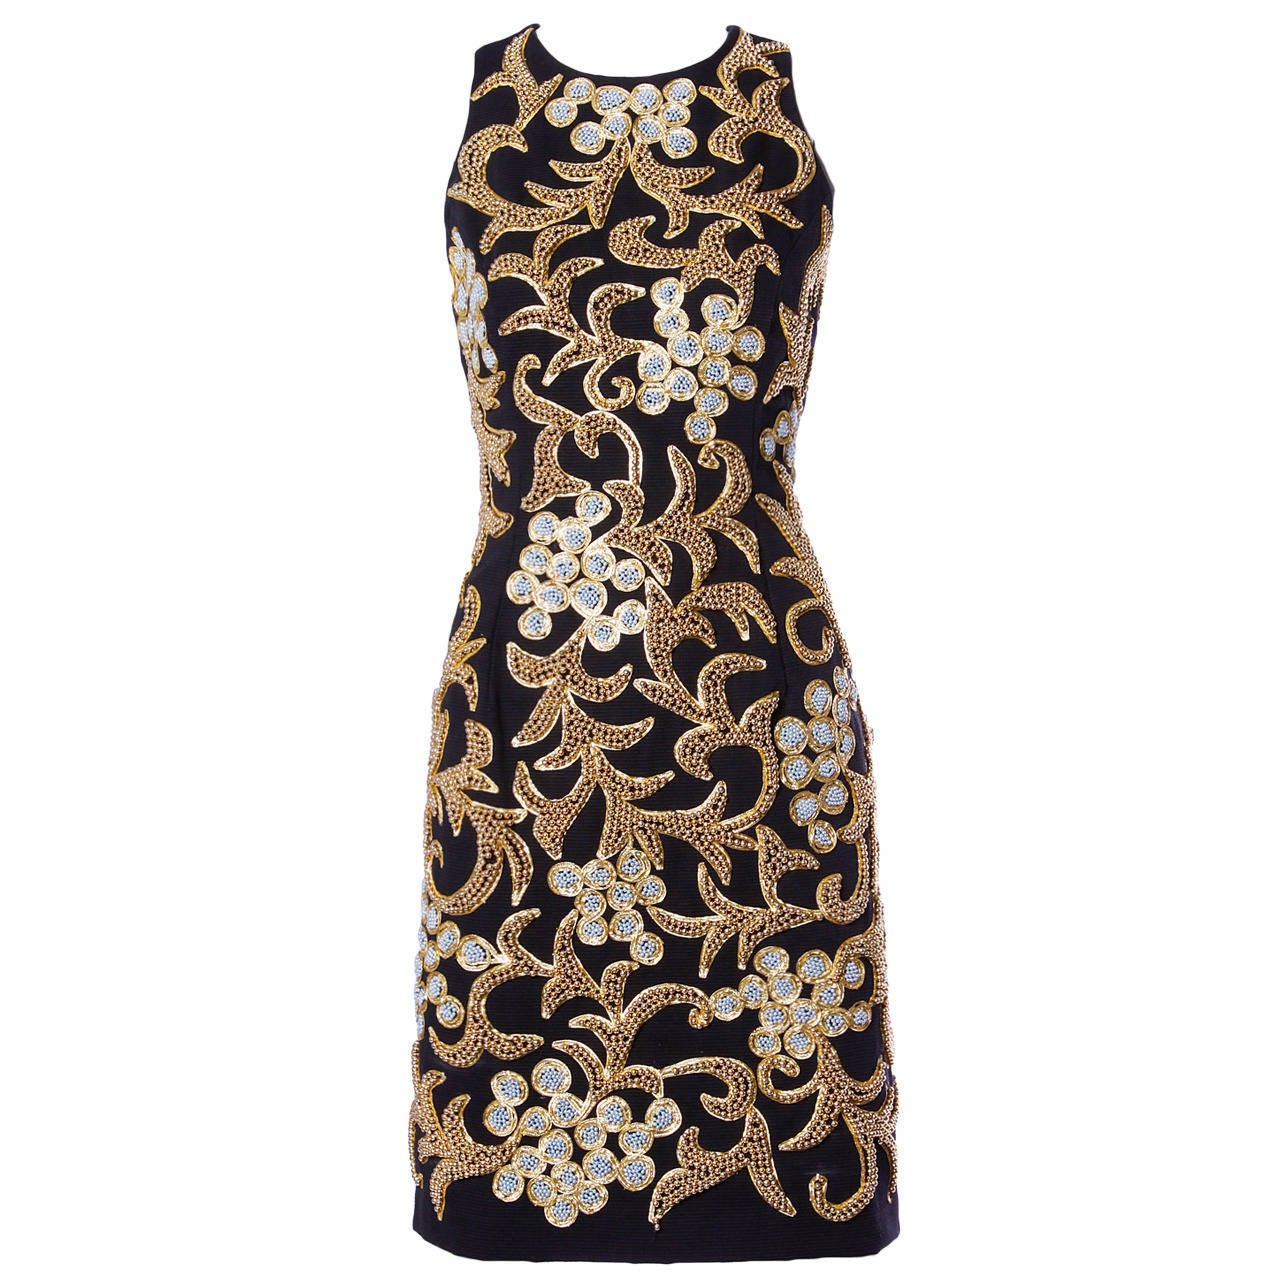 Bill Blass Vintage 1990s 90s Metallic Gold + Silver Beaded Black Formal Dress For Sale